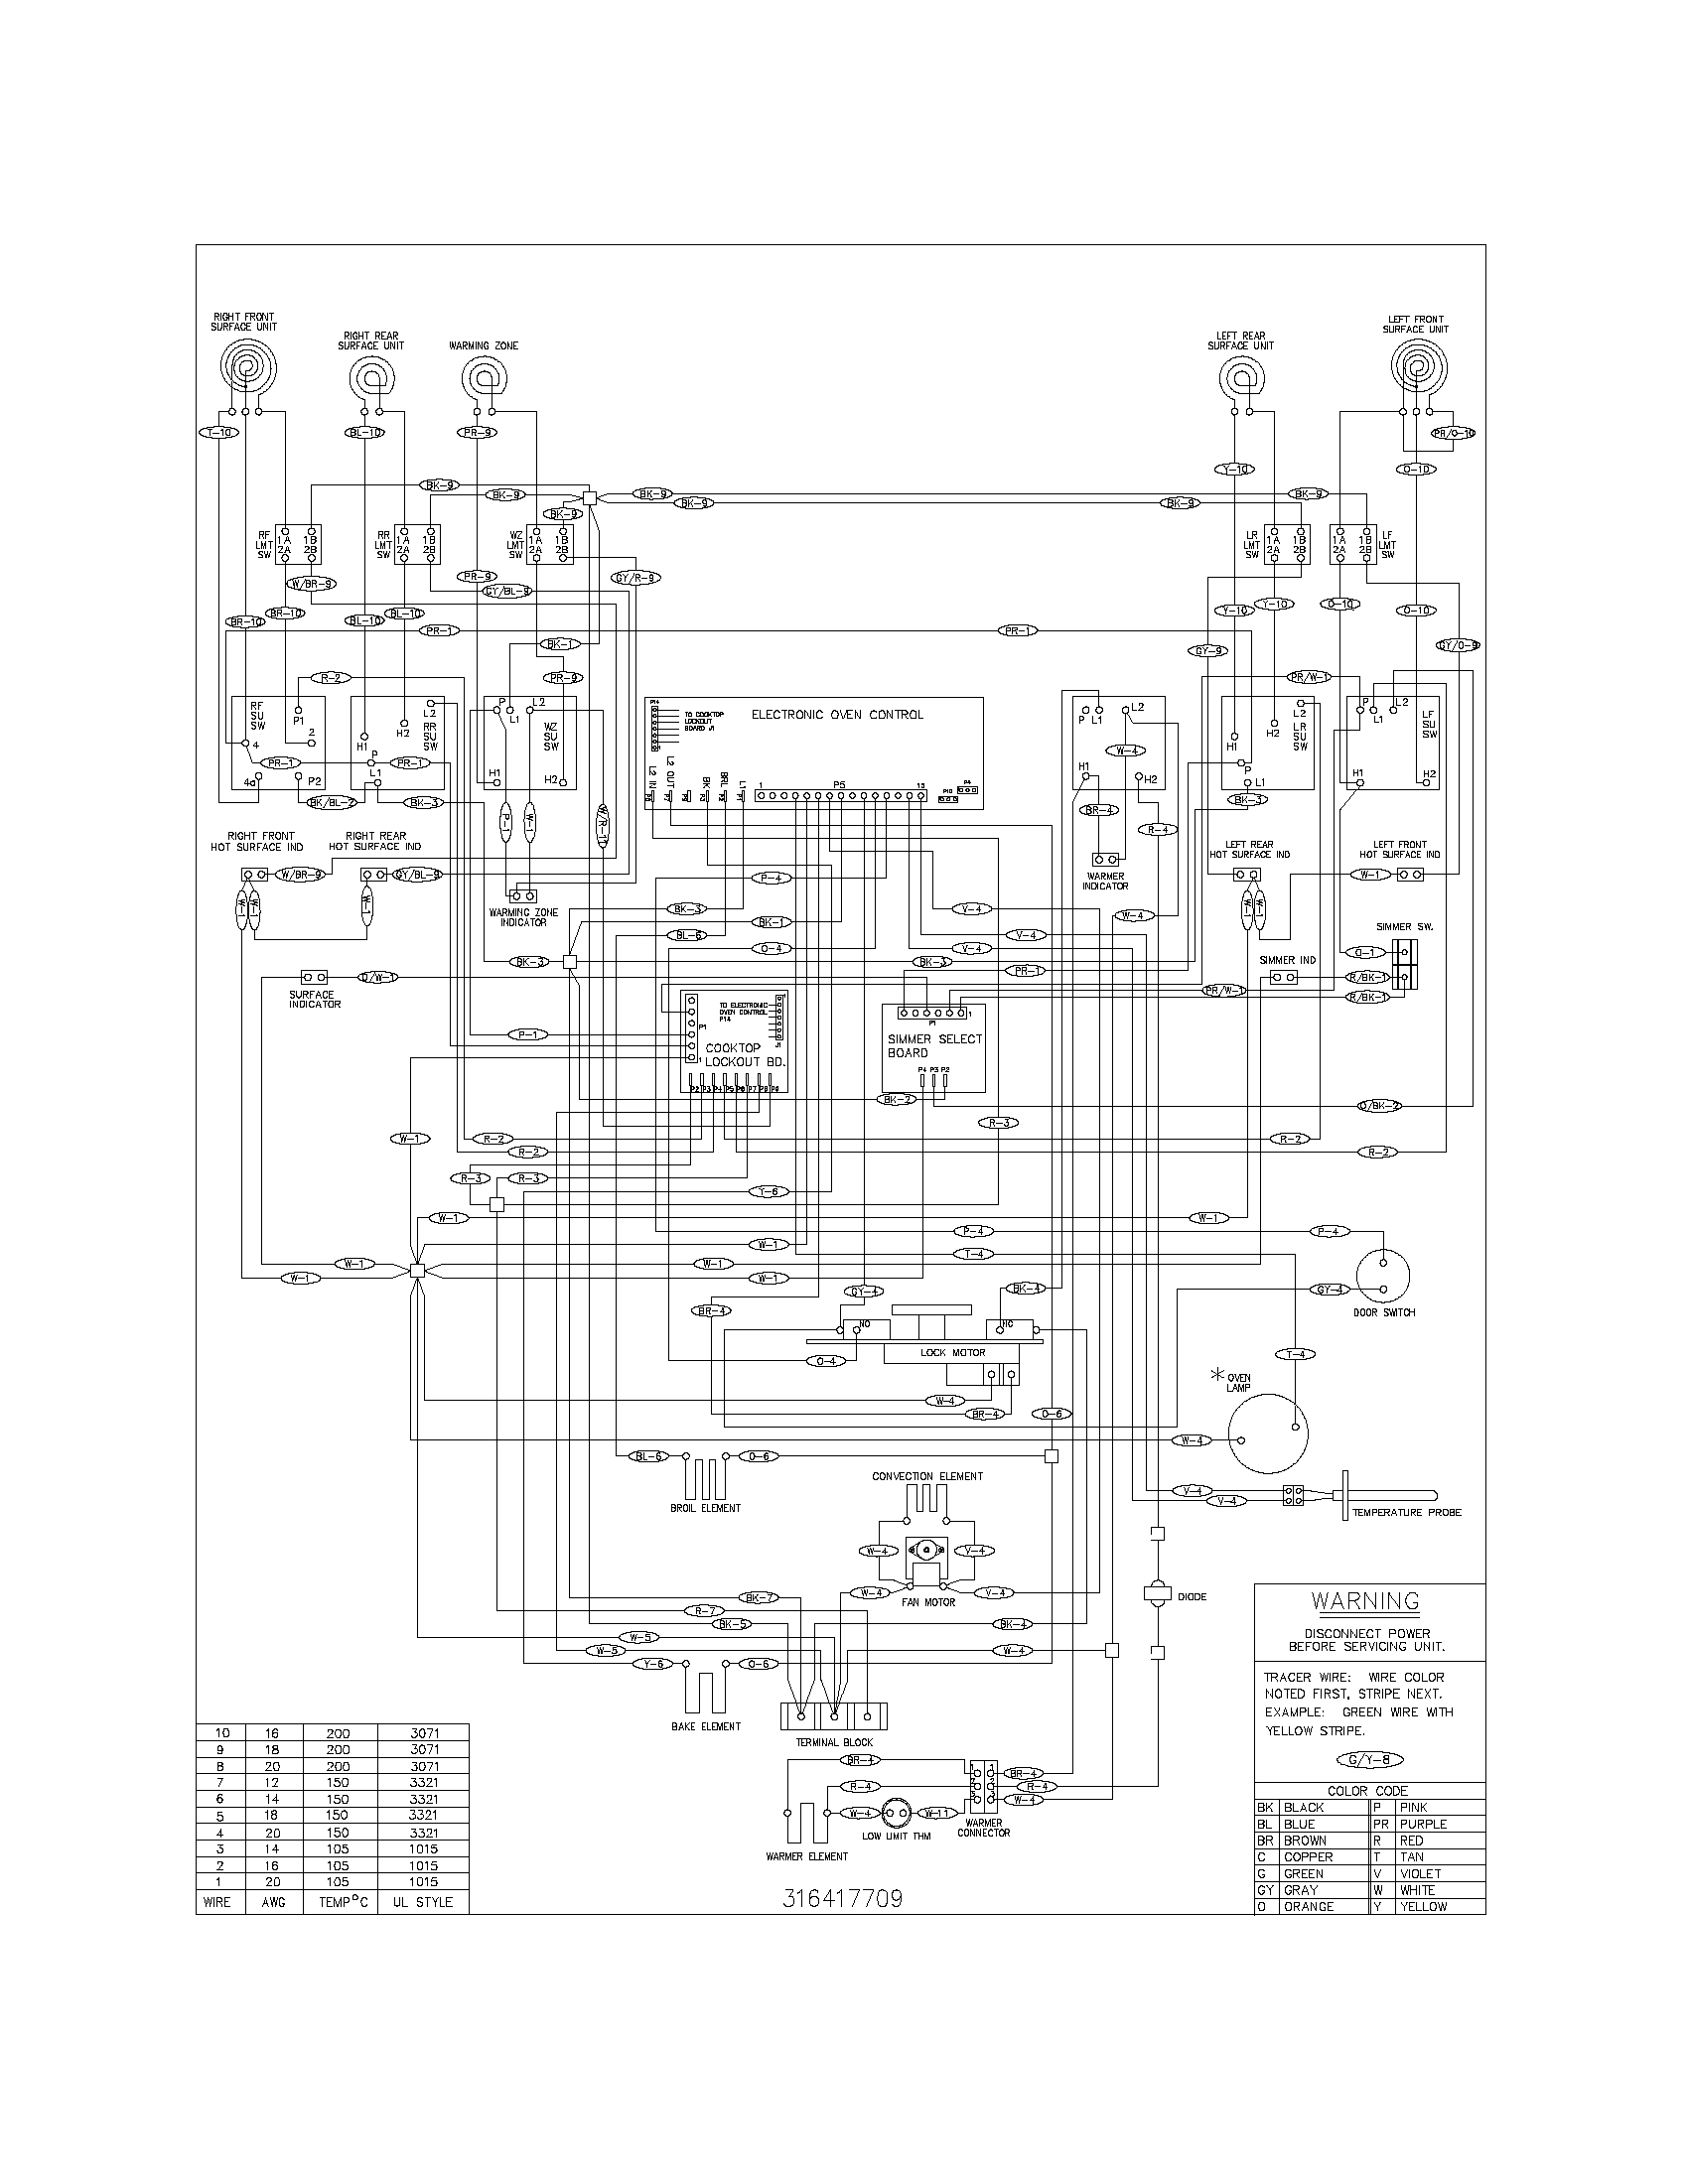 hotpoint double oven wiring diagram images electric hob sizes burner wiring diagram electric get image about